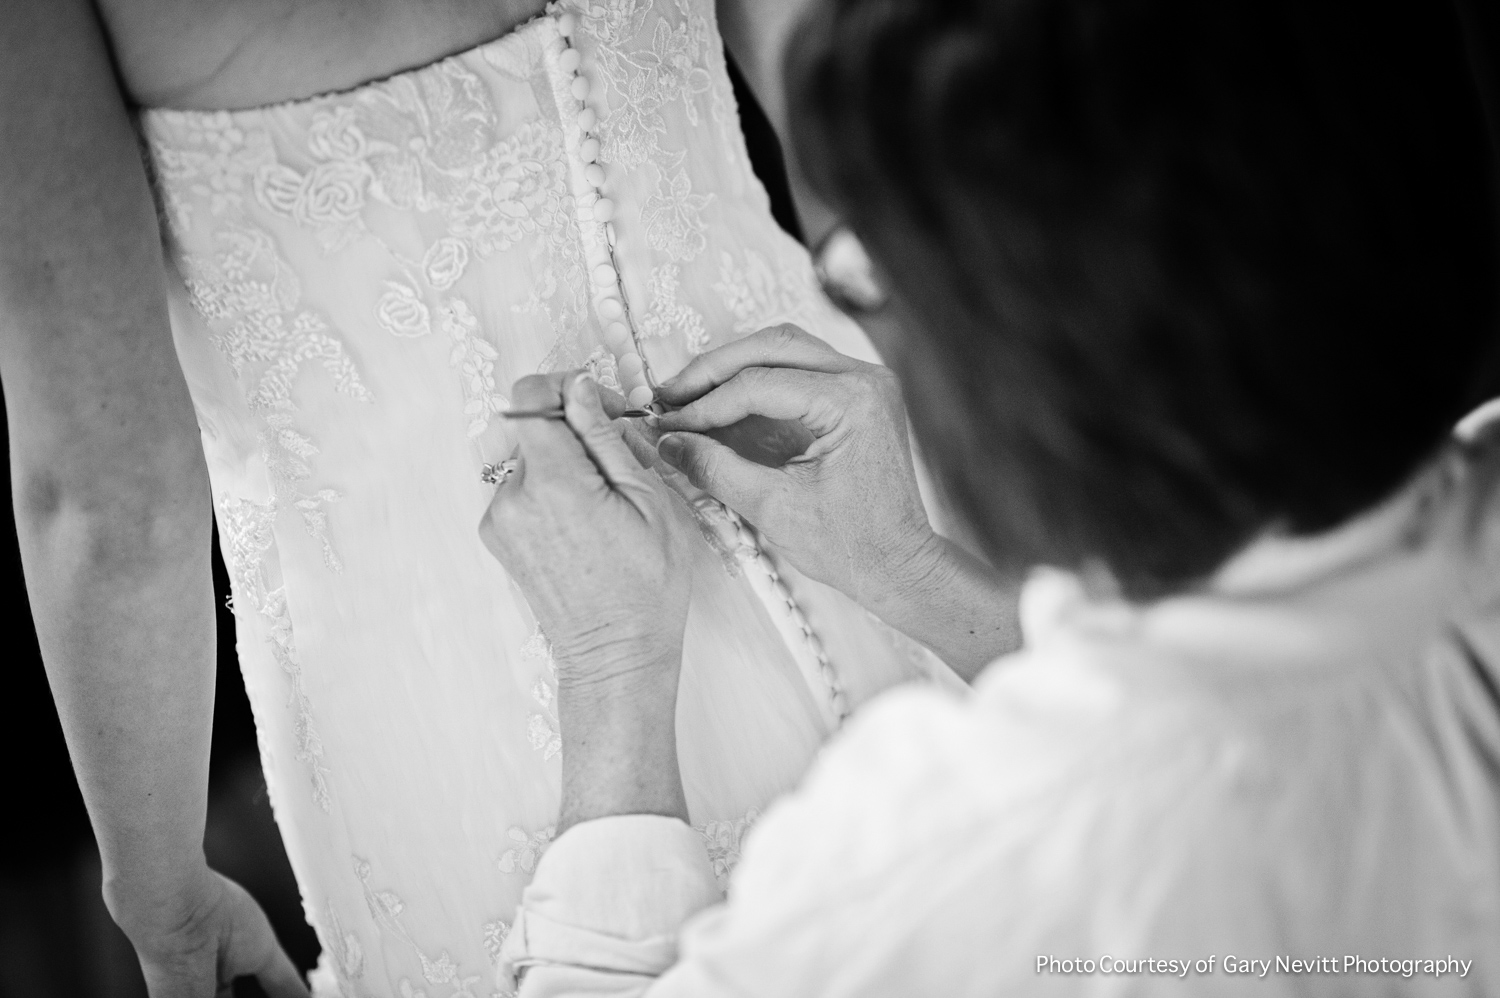 10 Philadelphia Wedding Planner Enzoani Bridal Mother of the Bride.jpg